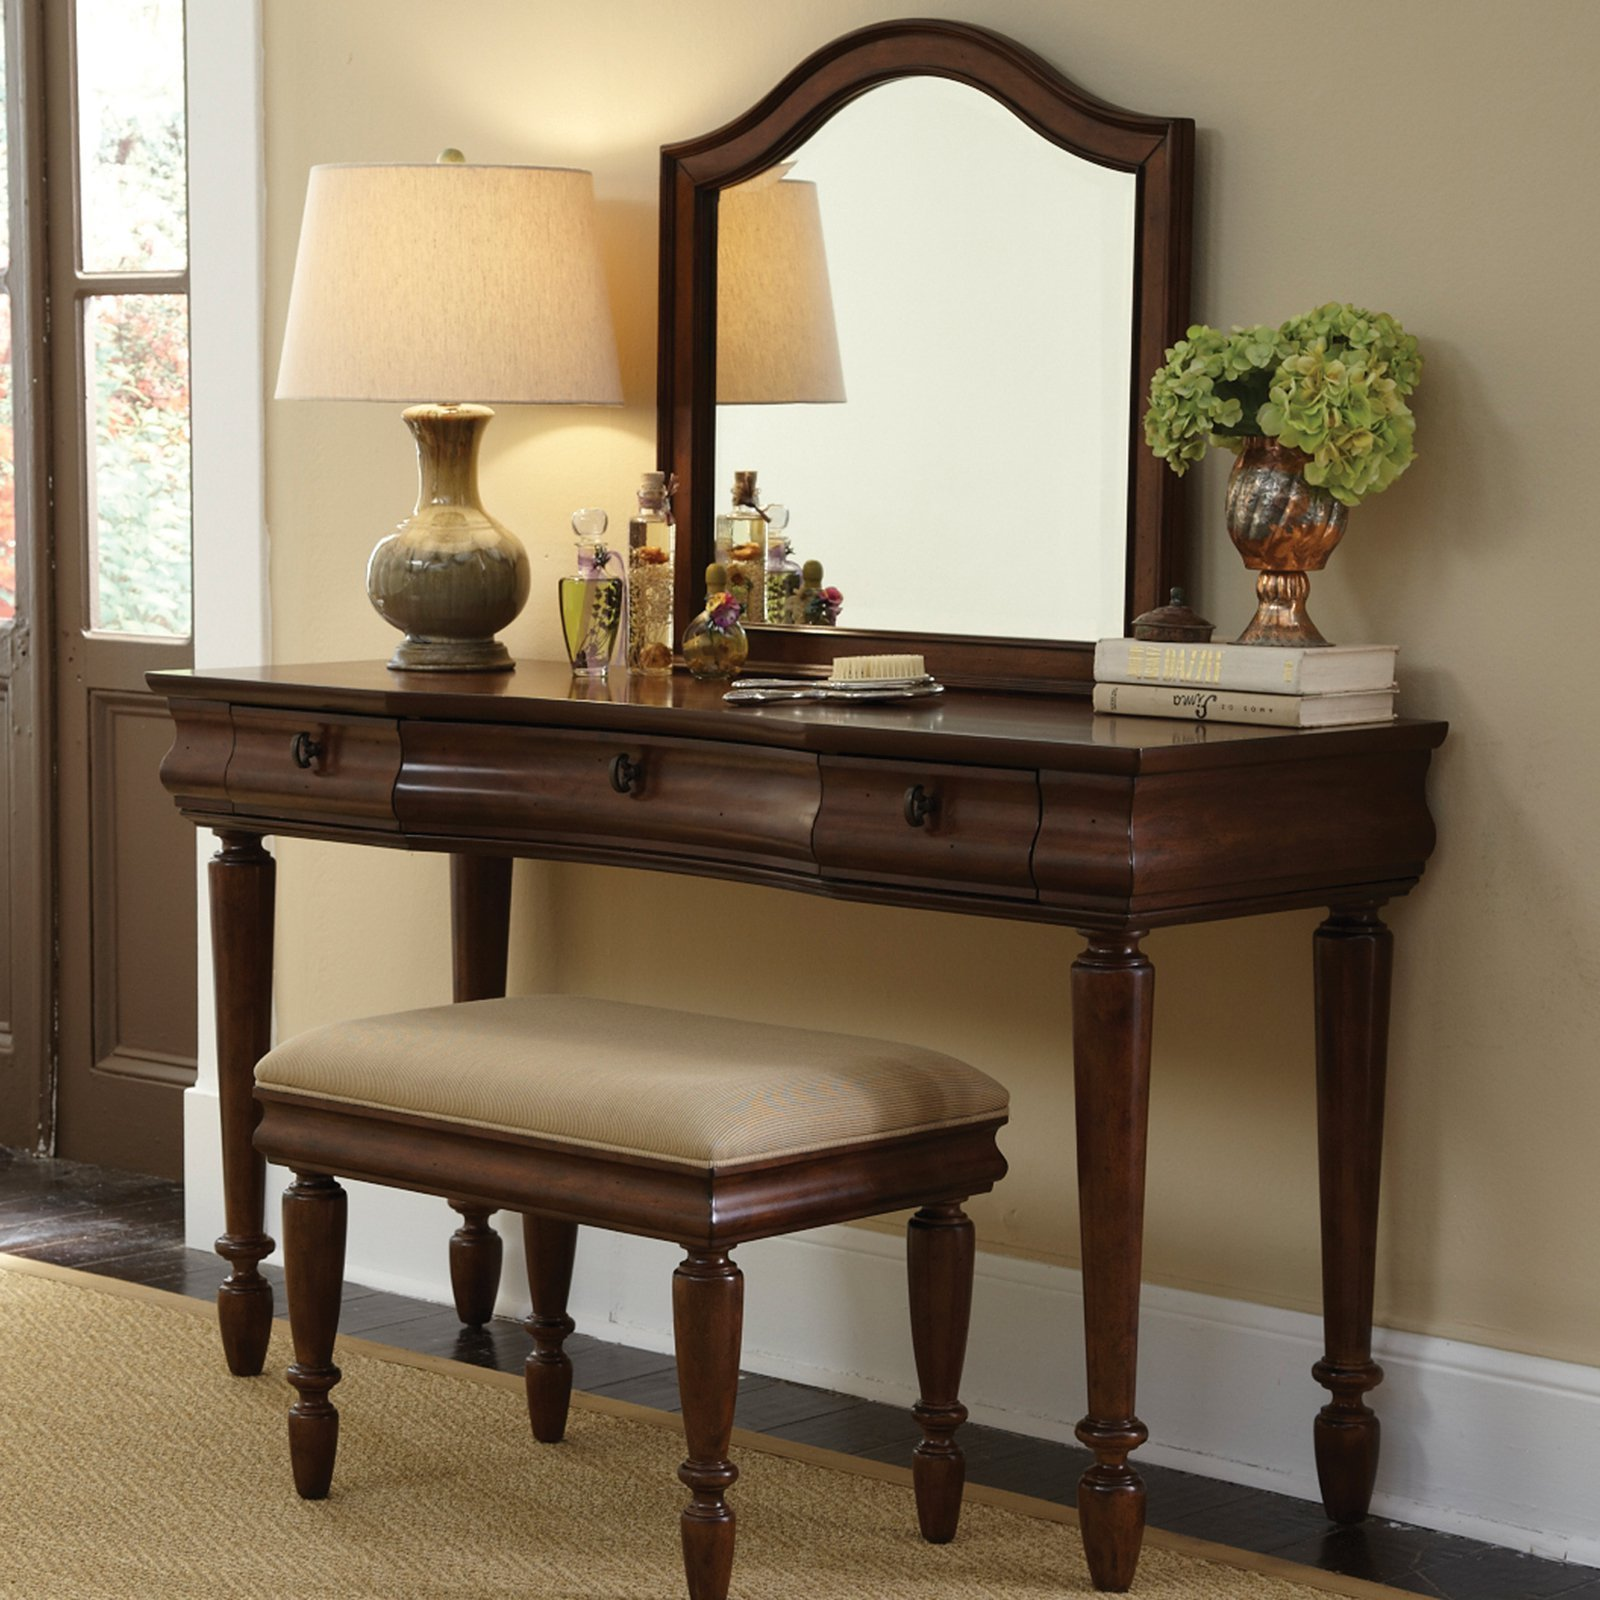 Best Rustic Traditions Bedroom Vanity Set Rustic Cherry At With Pictures